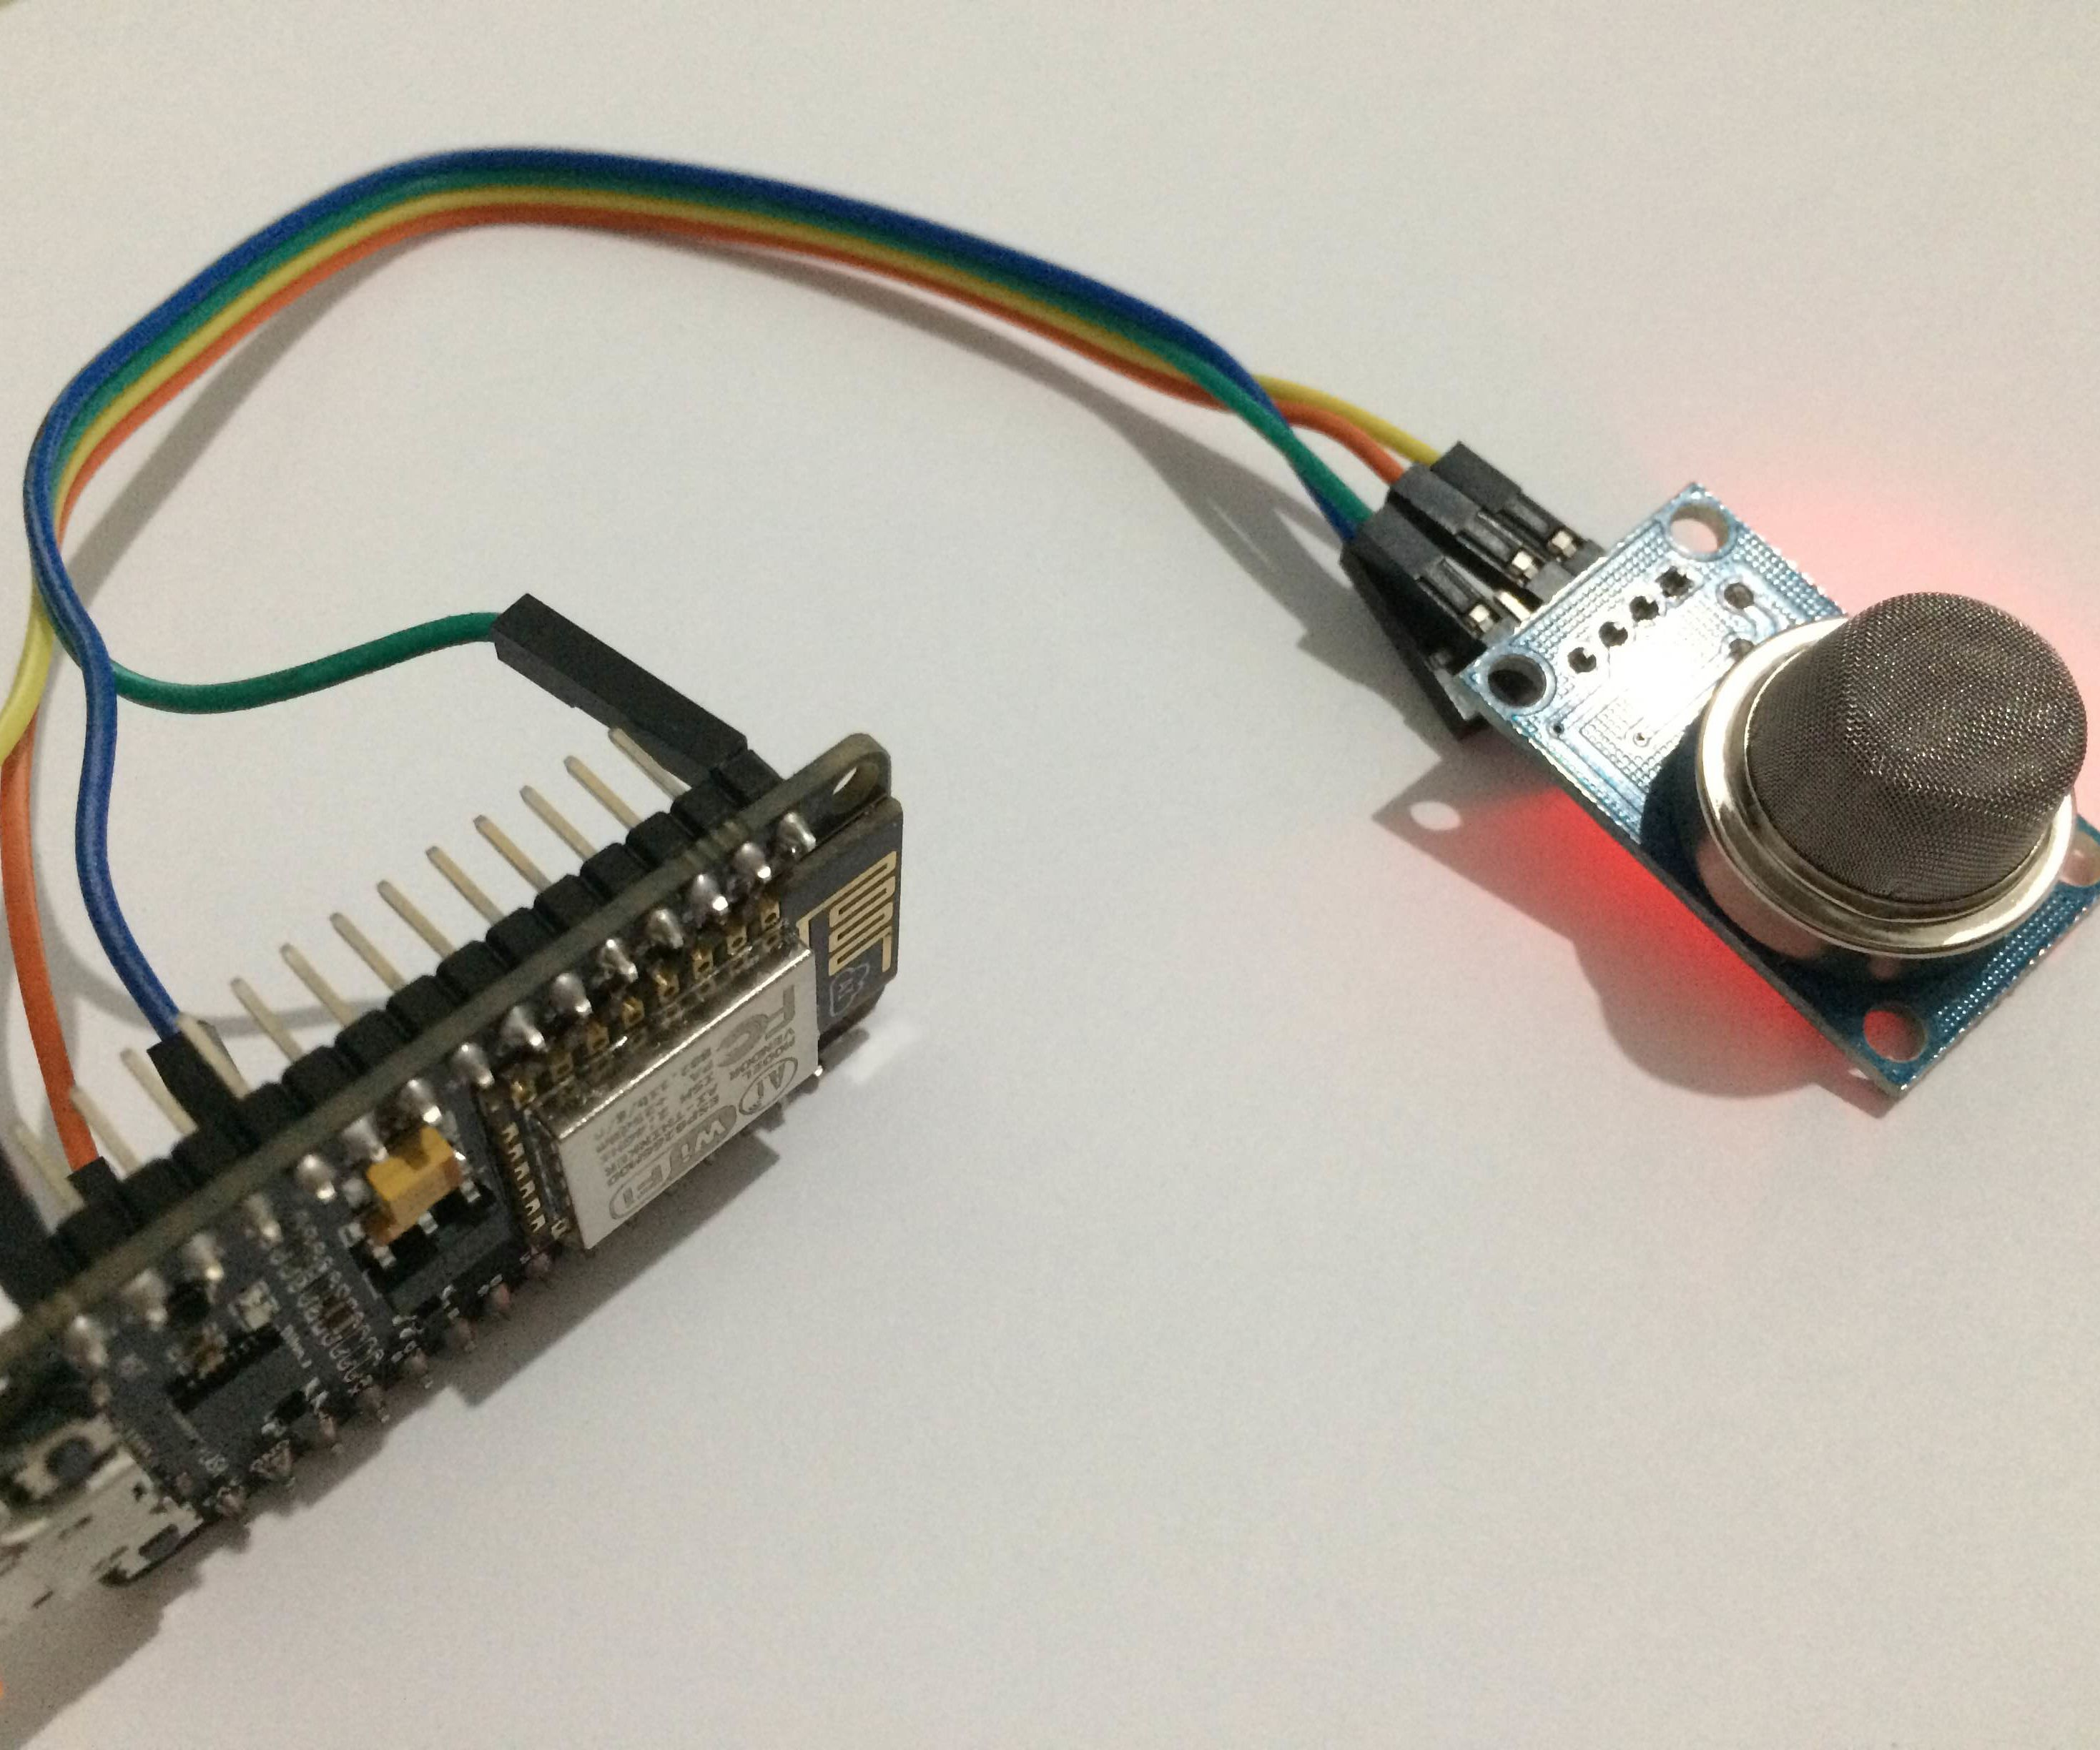 Easy Air Quality Report With NodeMCU+MQ135+Cayenne